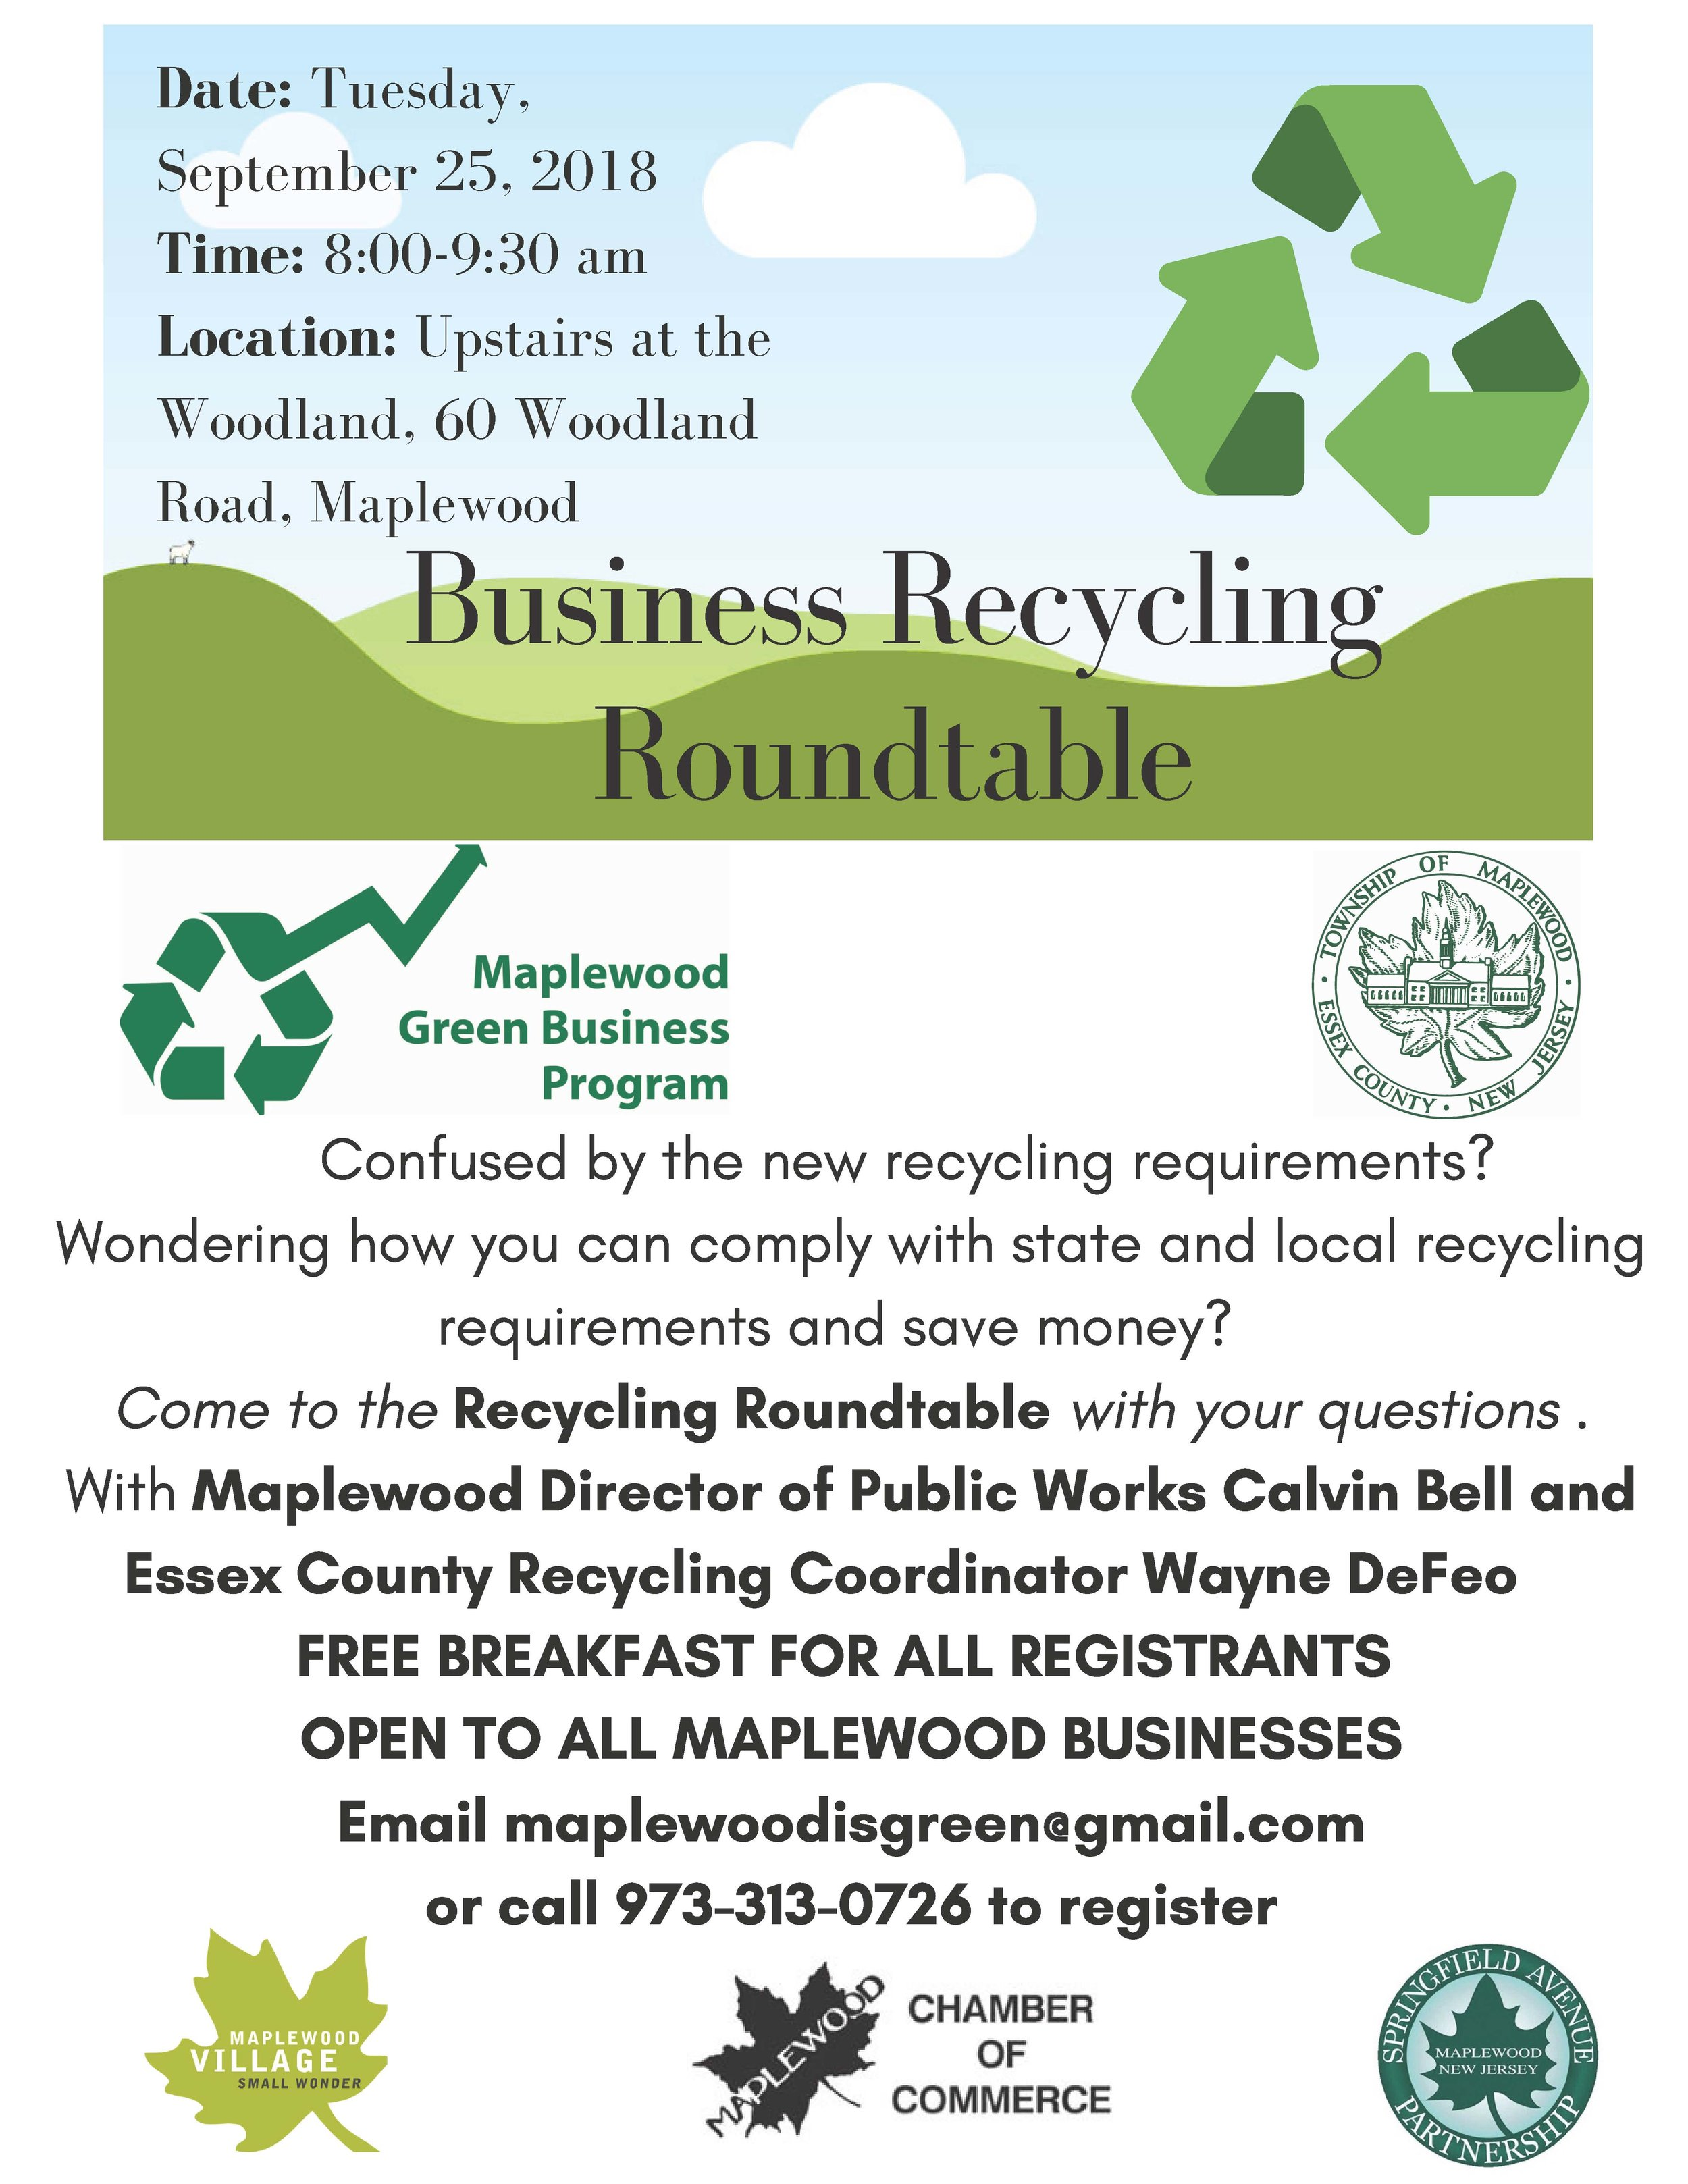 Recycling Roundtable Maplewood FINAL.jpg